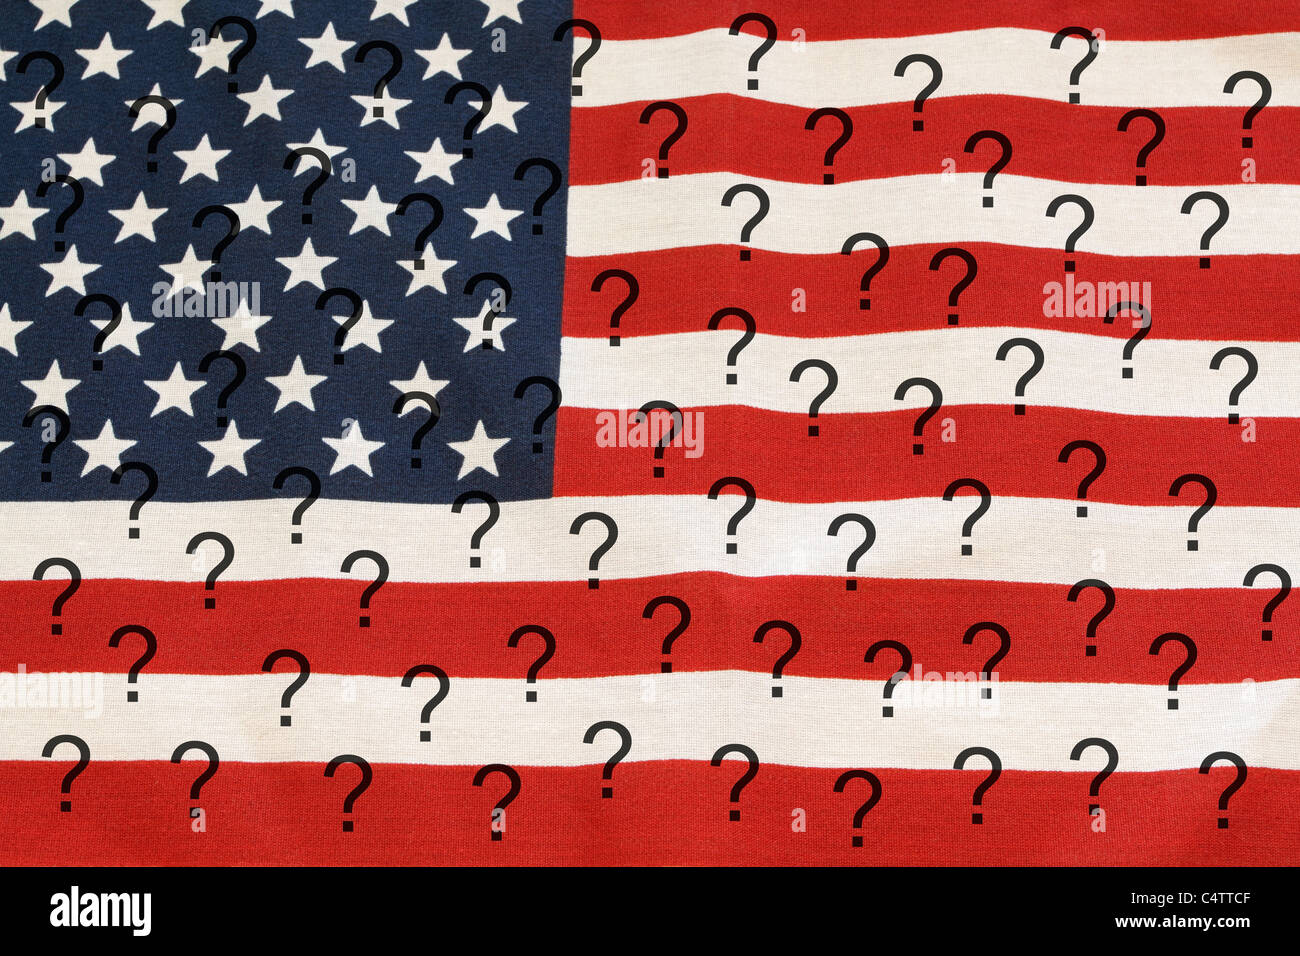 Conceptual image questioning the direction of the United States - Stock Image